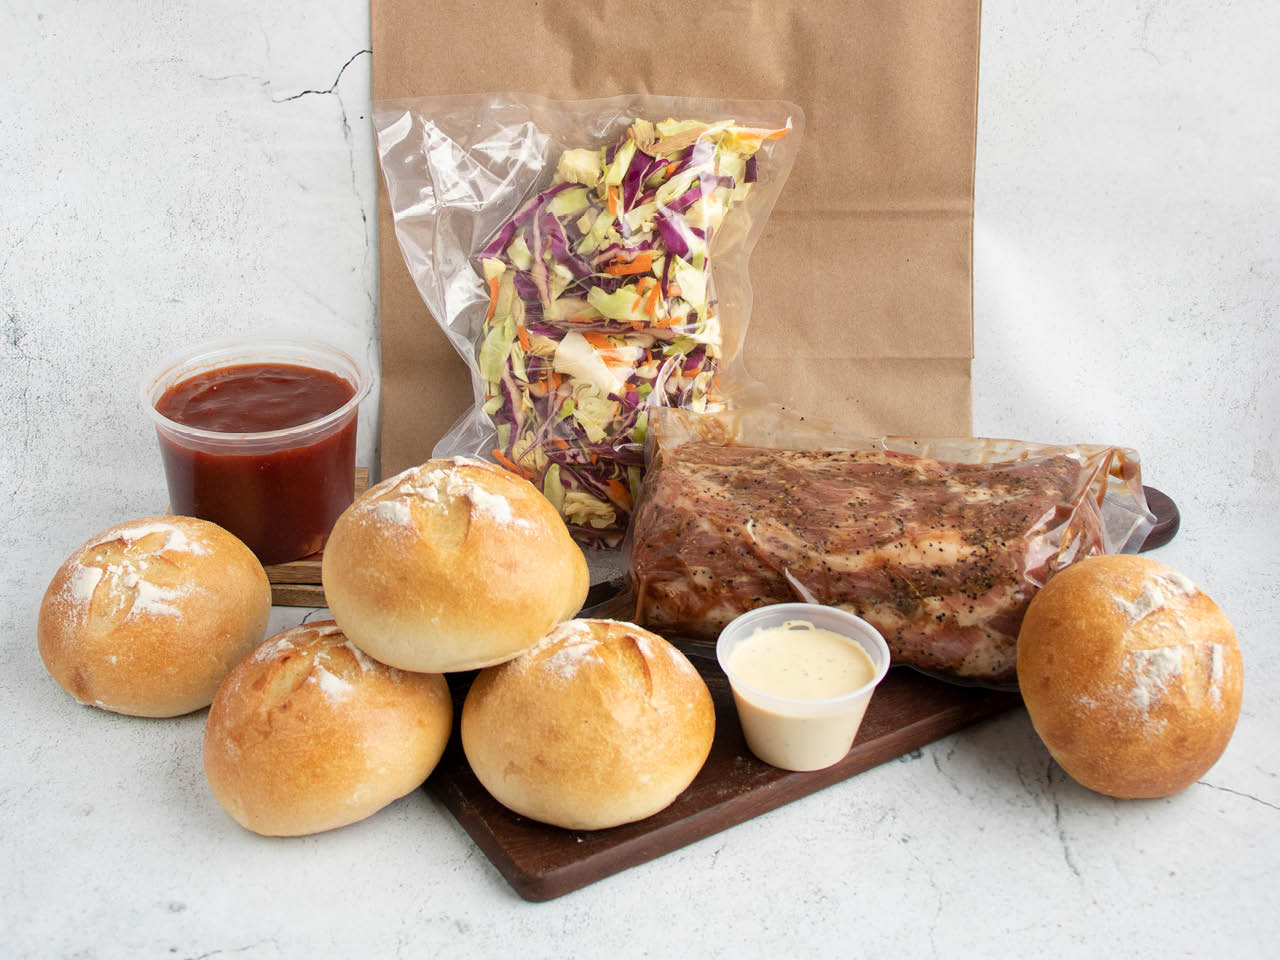 Summer Meal Kit Pulled Pork on a Bun Uncooked